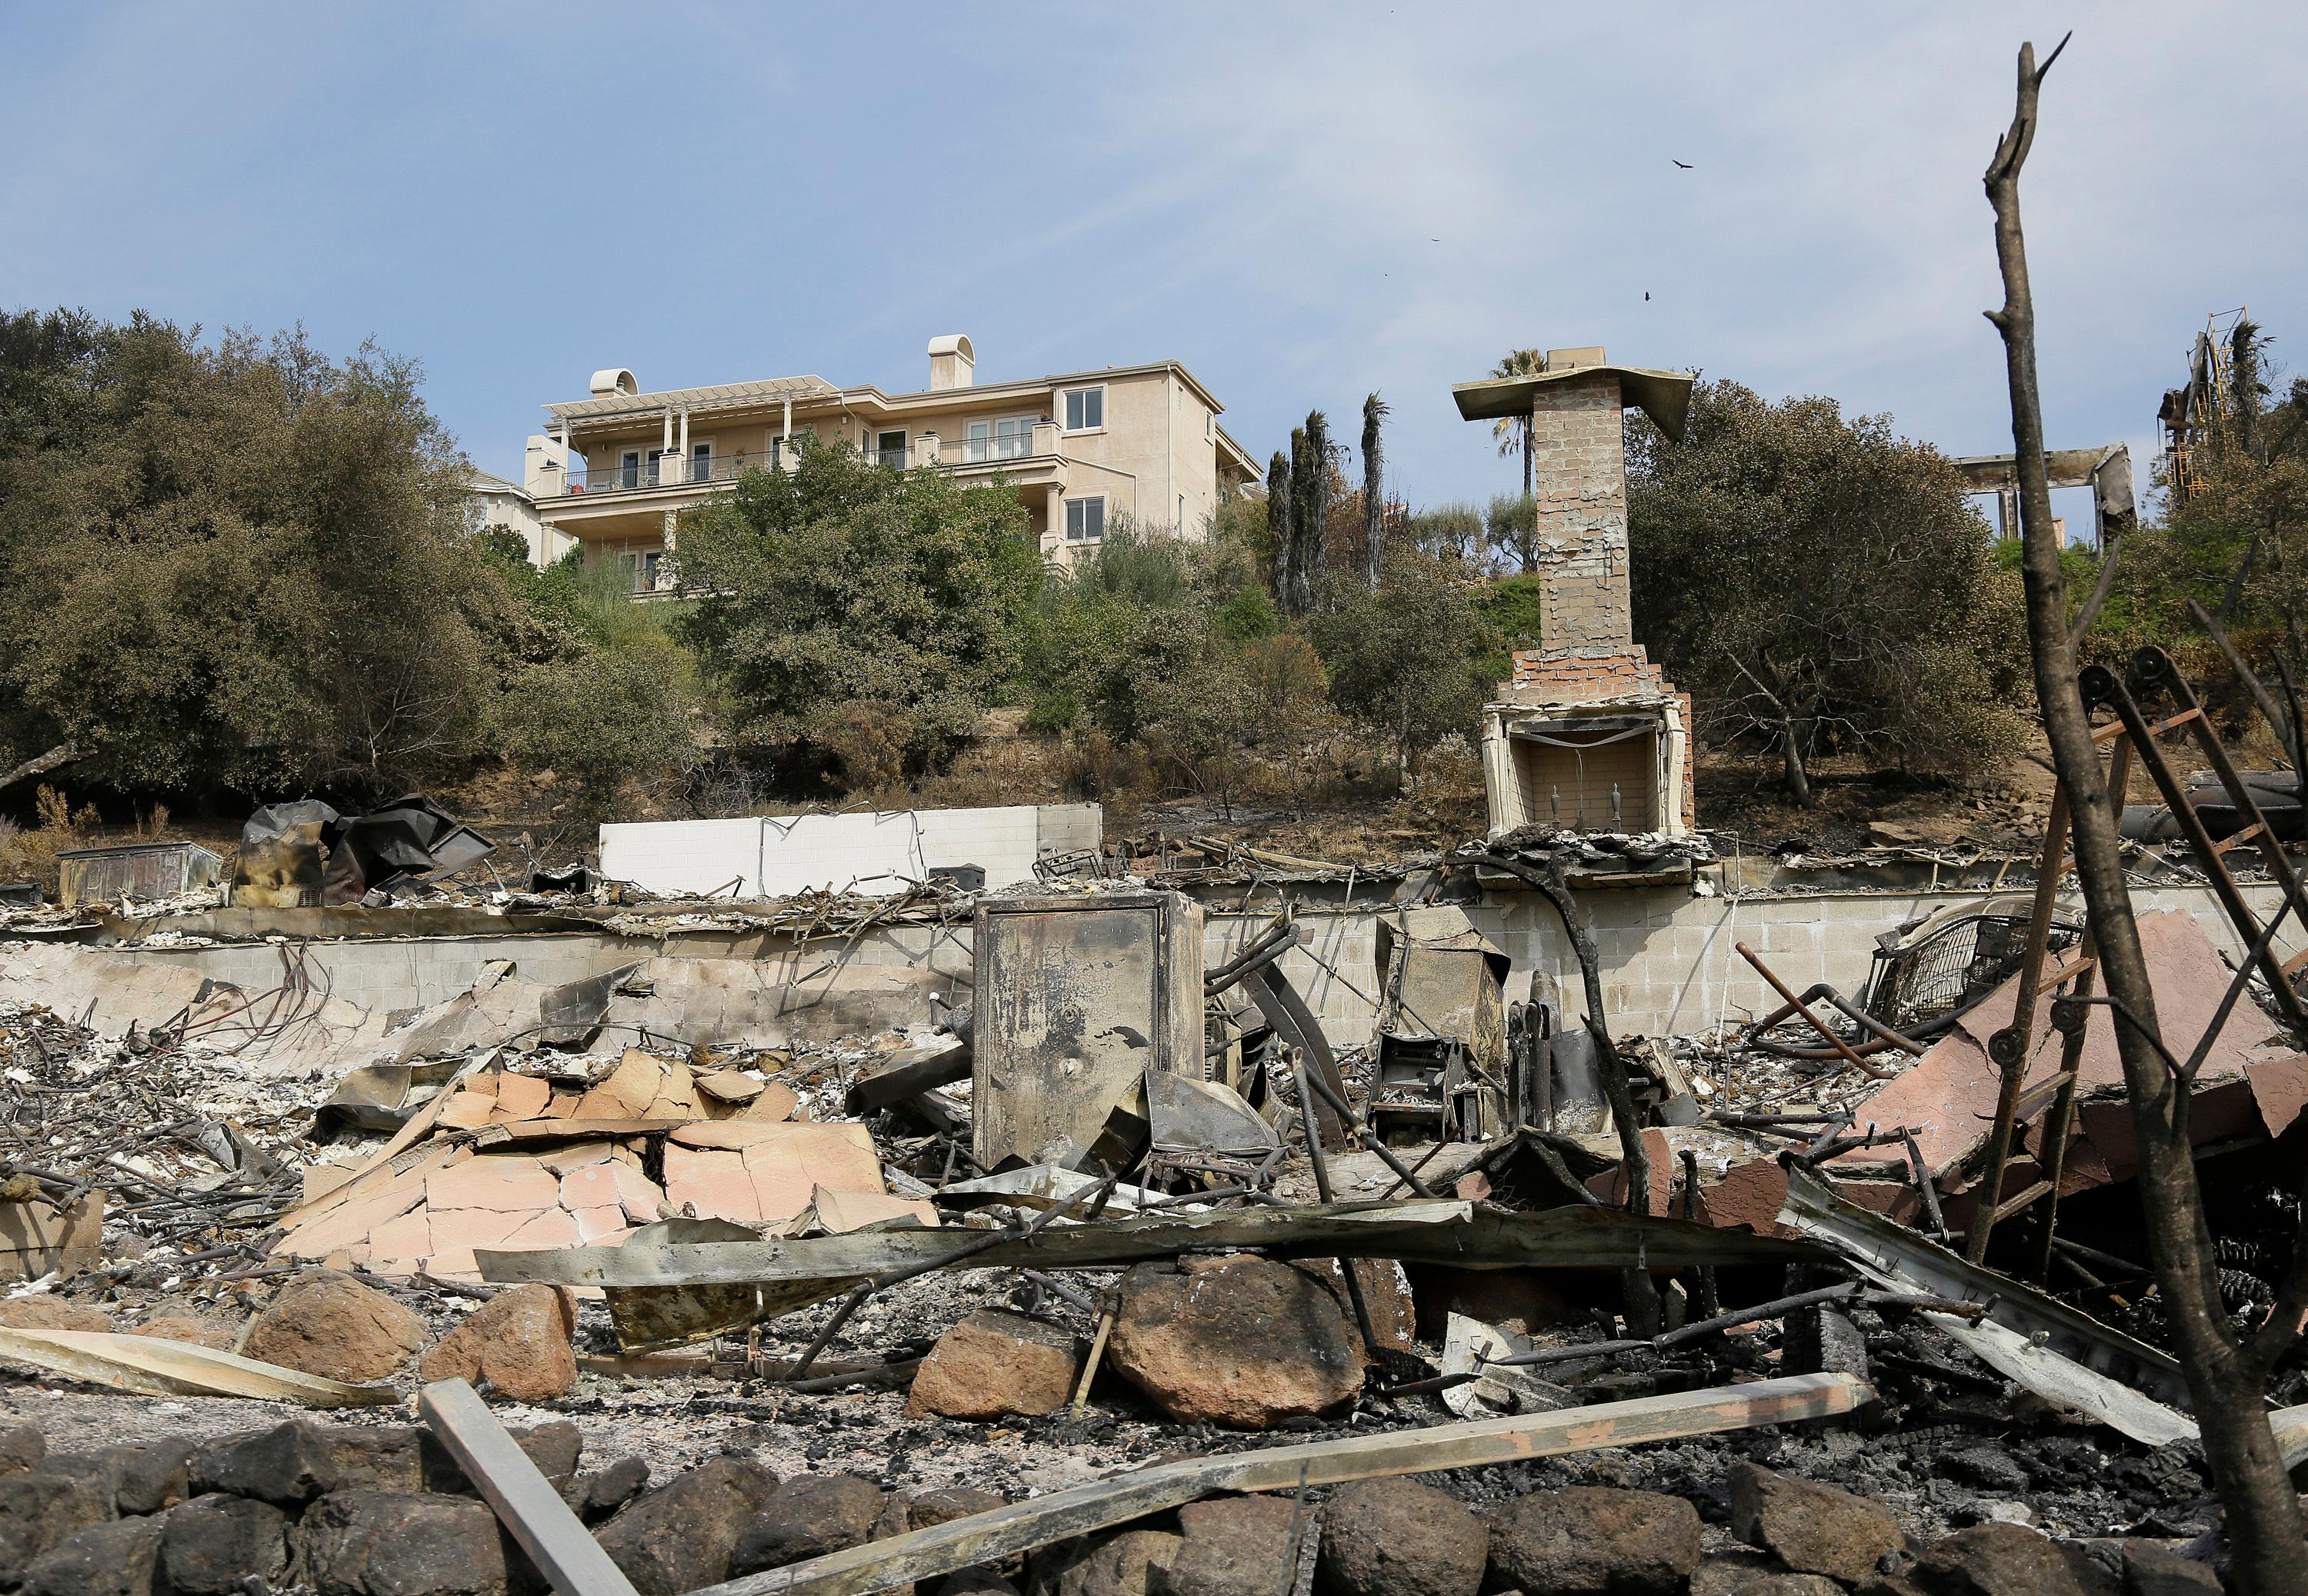 A house stands intact above one that was destroyed by wildfire near Atlas Peak Road Monday, Oct. 16, 2017, in Napa, Calif. State and local officials say they are trying to get people back into their homes, but they cautioned that it could take days and even weeks for neighborhoods hard hit by Northern California wildfires. (AP Photo/Eric Risberg)